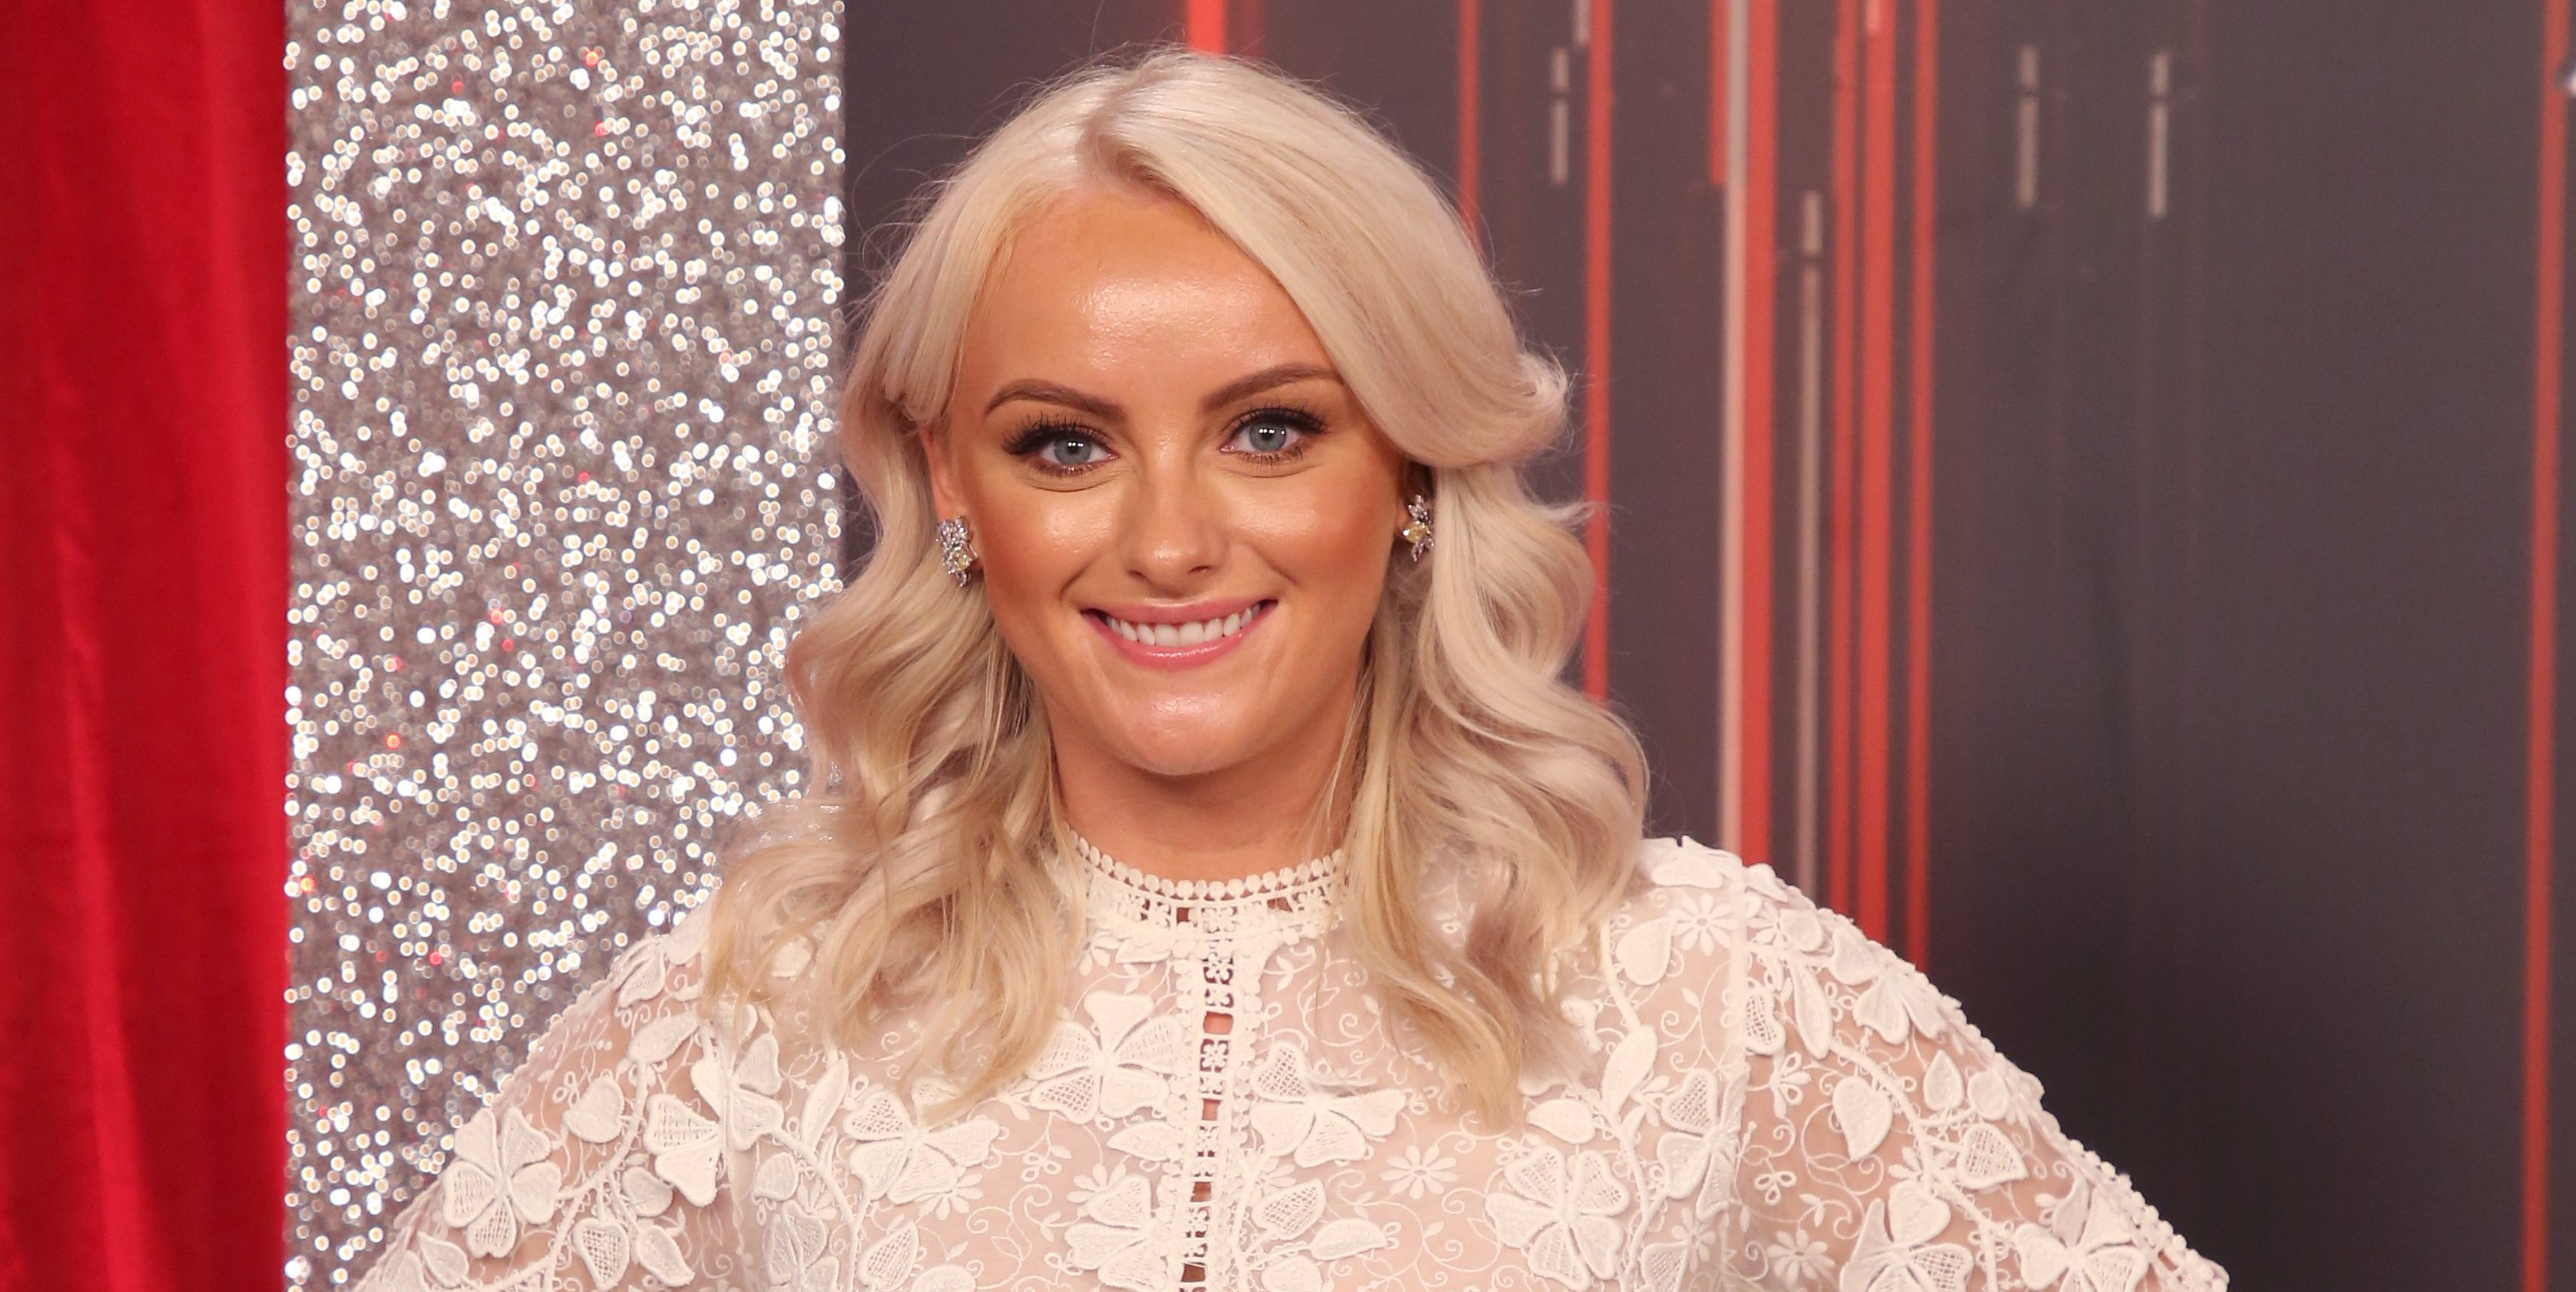 Katie McGlynn reveals she's 'heartbroken' as Coronation Street exit nears